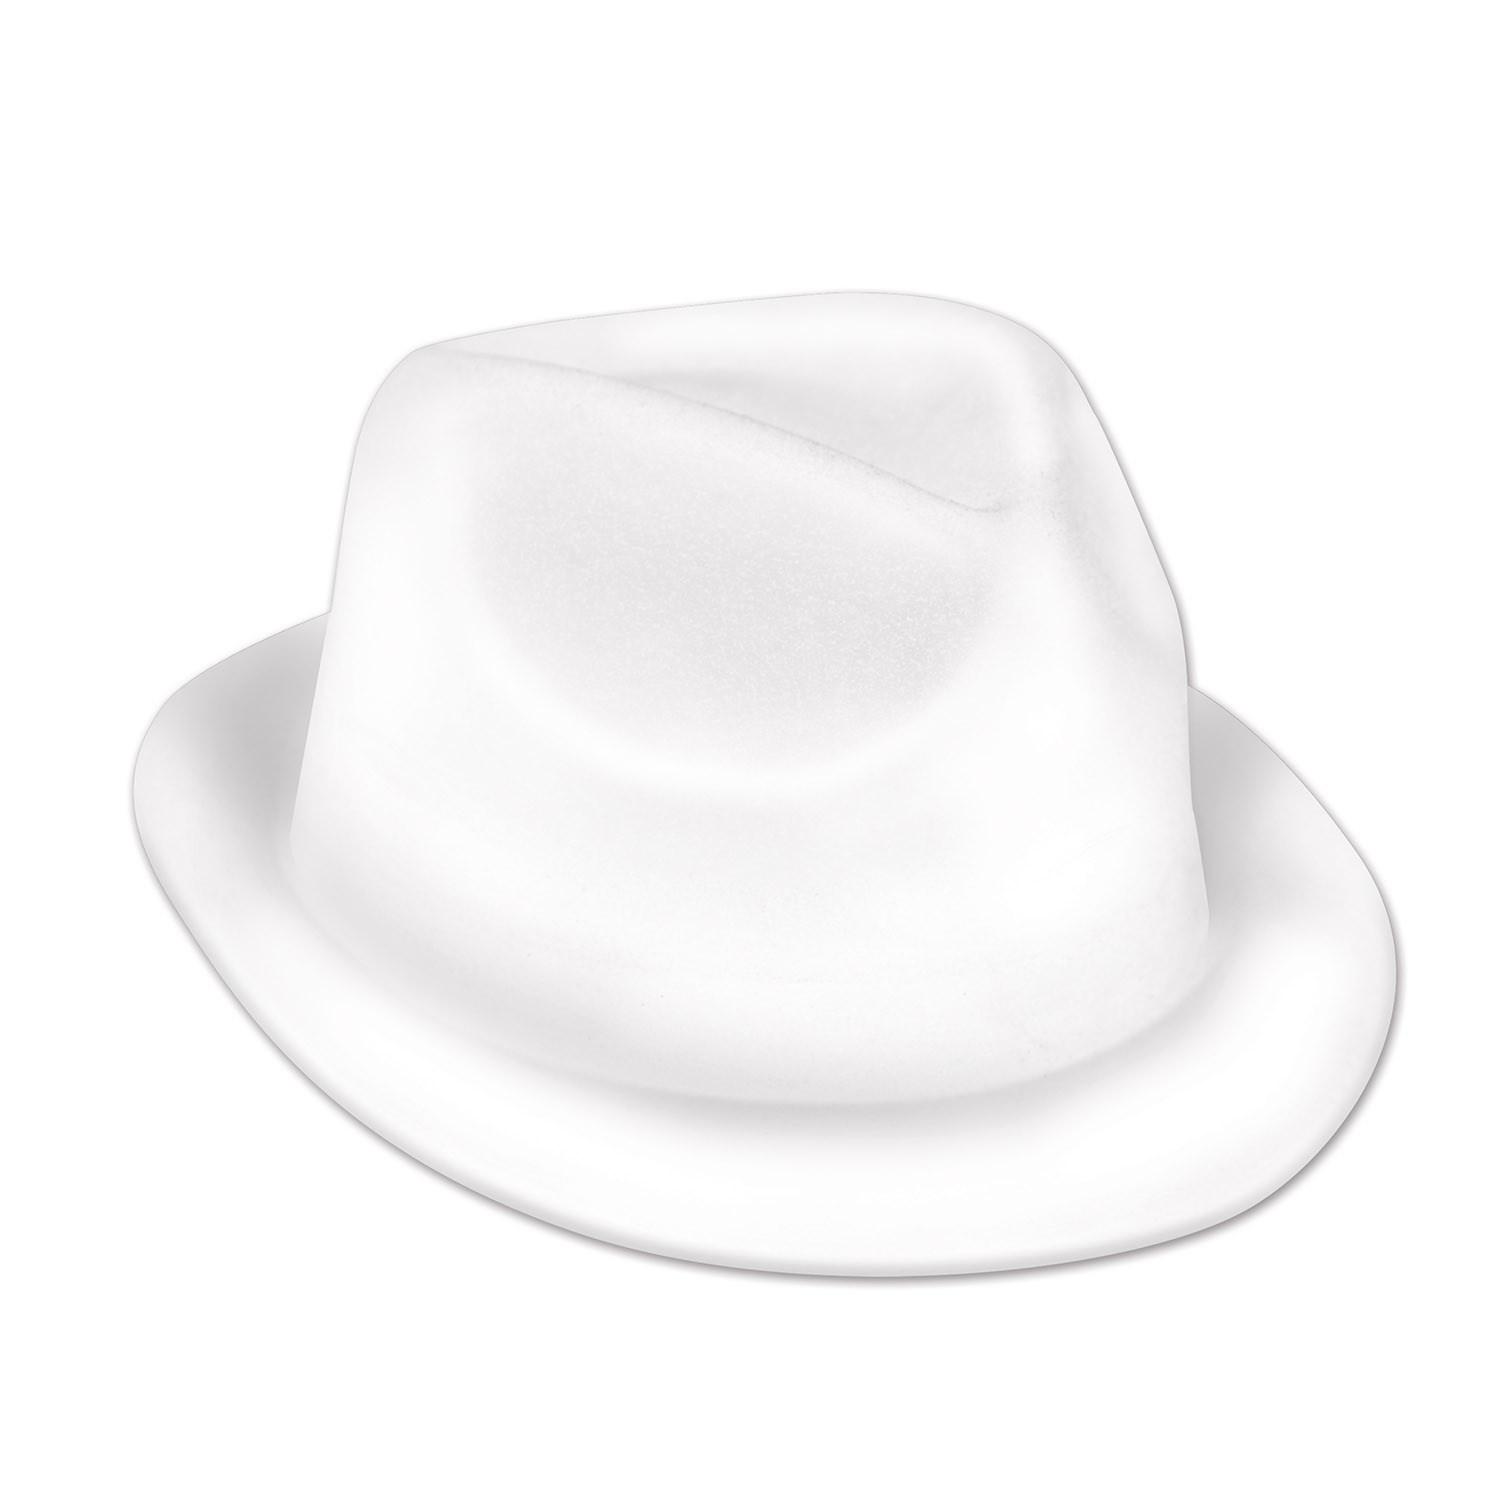 Velour Chairman Hat (Pack of 25) Velour party hat, chairman party hat, white party hat, party hat, white velour party hat